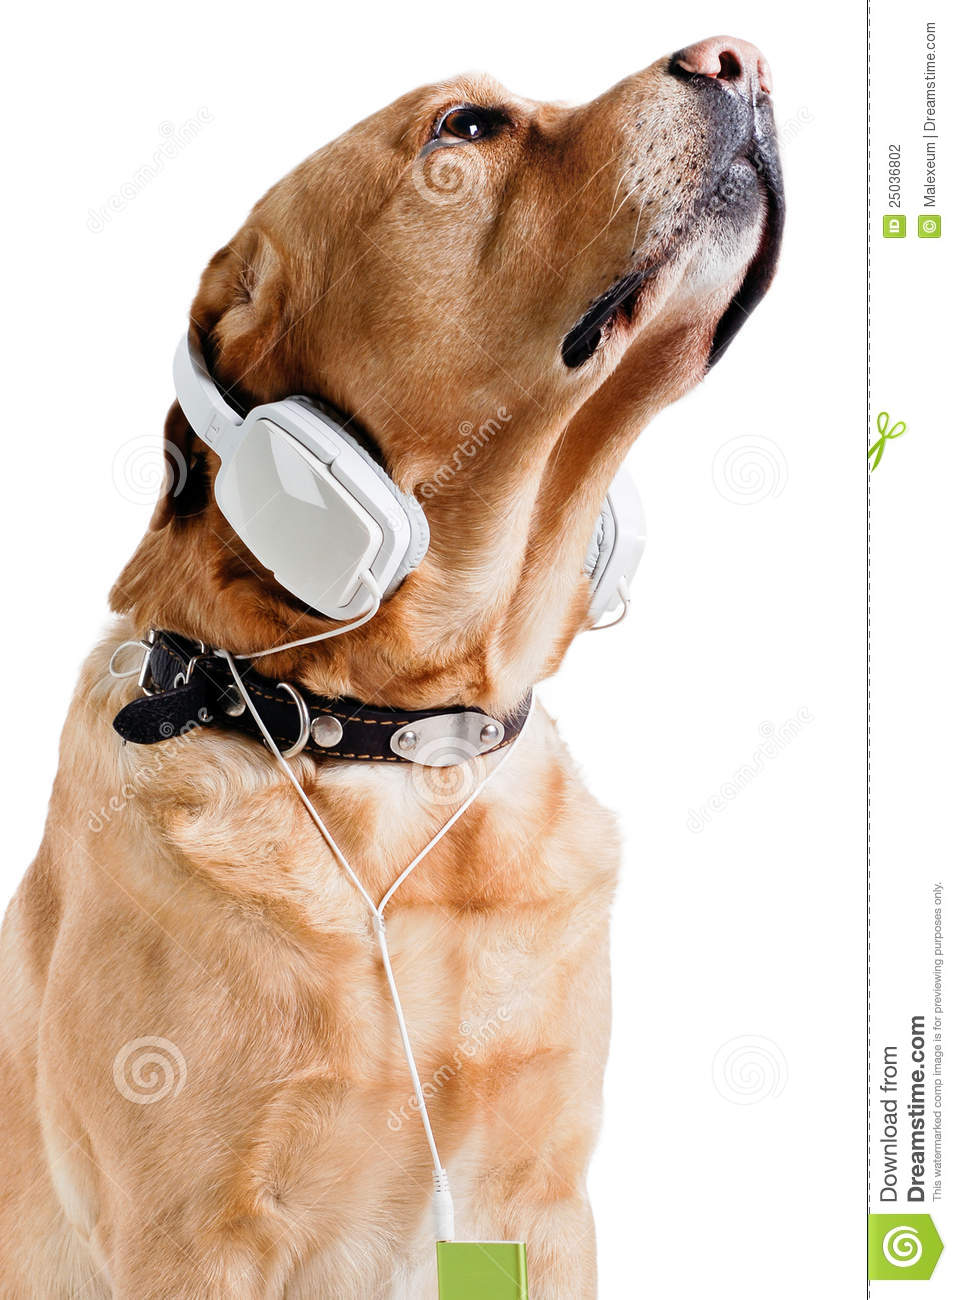 Dog listening to music stock photo. Image of shot, ideas ...